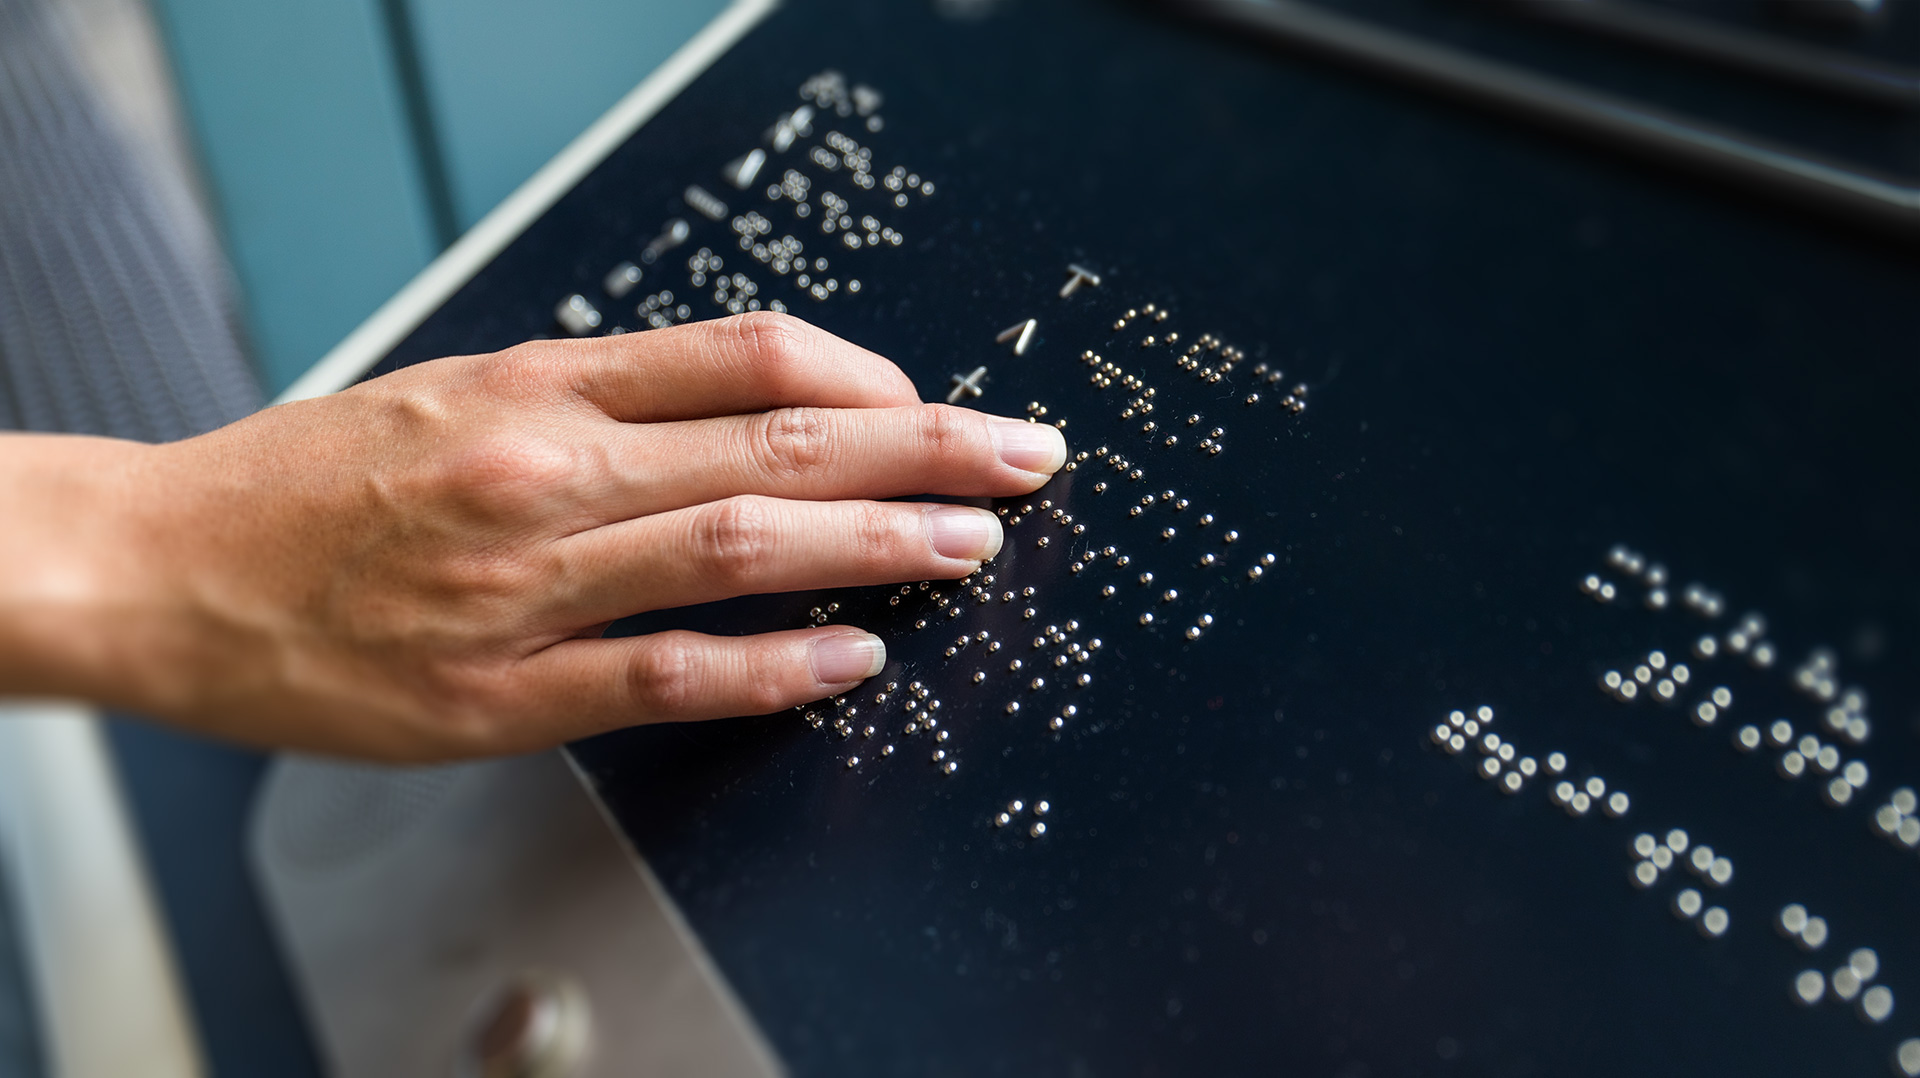 Hand touch on braille text panel